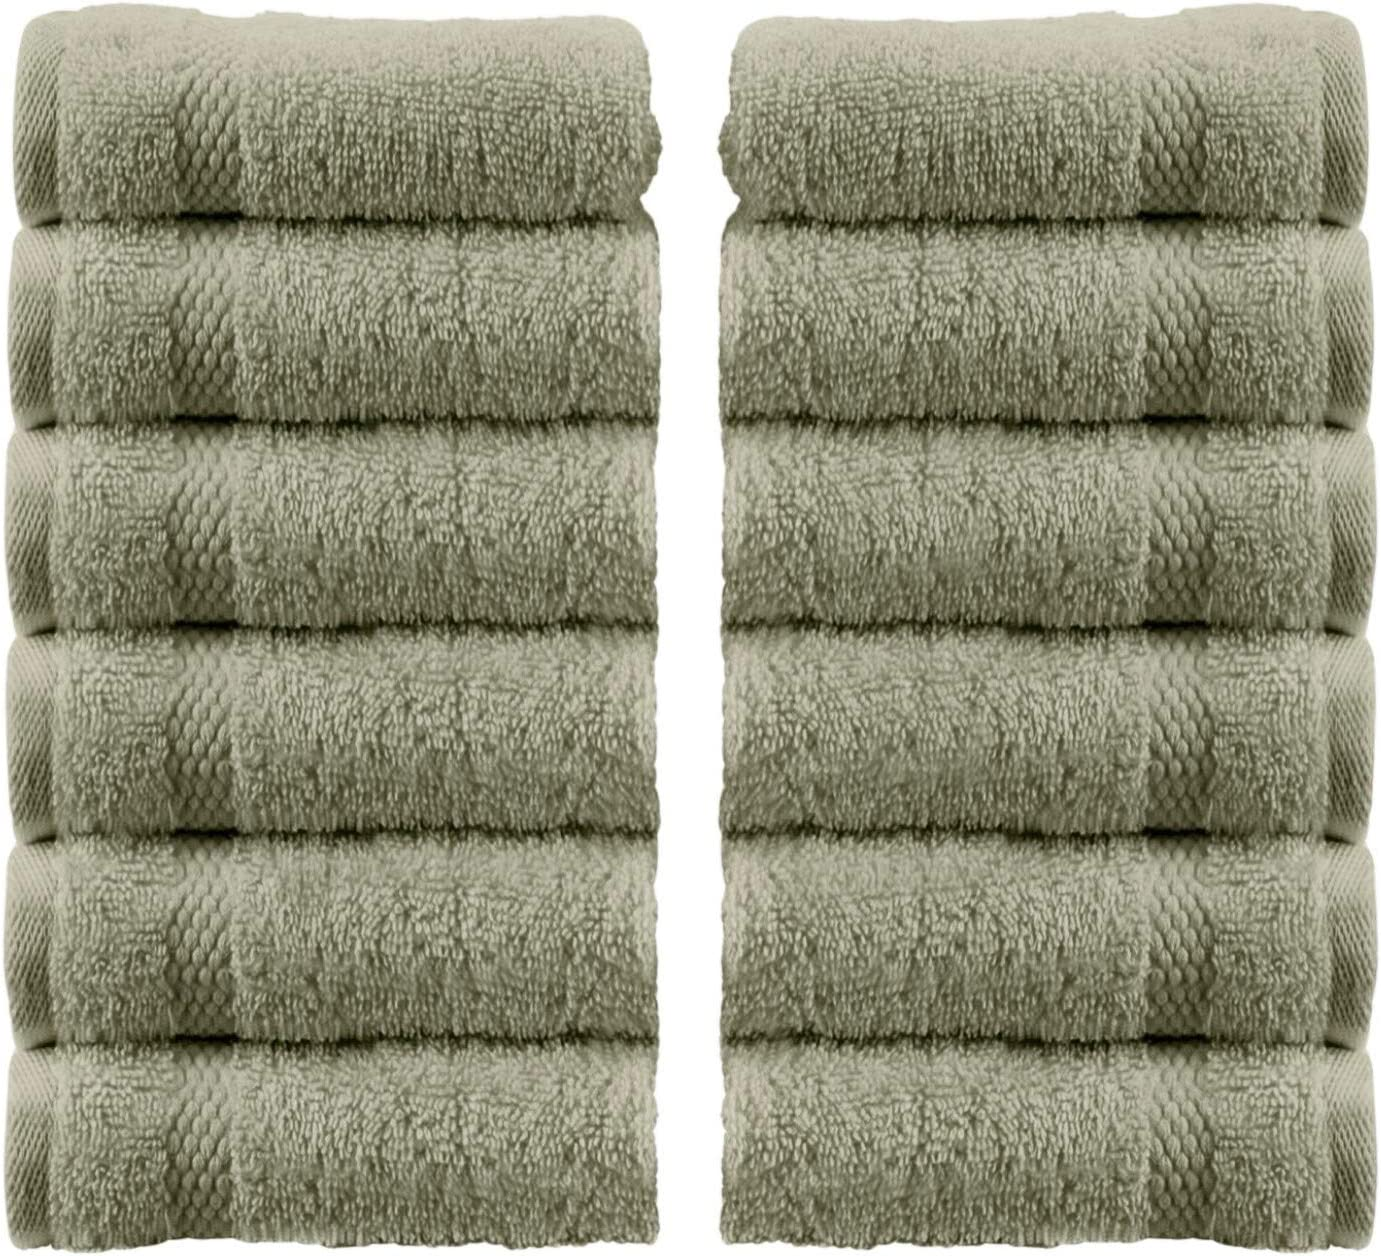 White Classic Luxury Cotton Washcloths - Large Hotel Spa Bathroom Face Towel | 12 Pack | Green